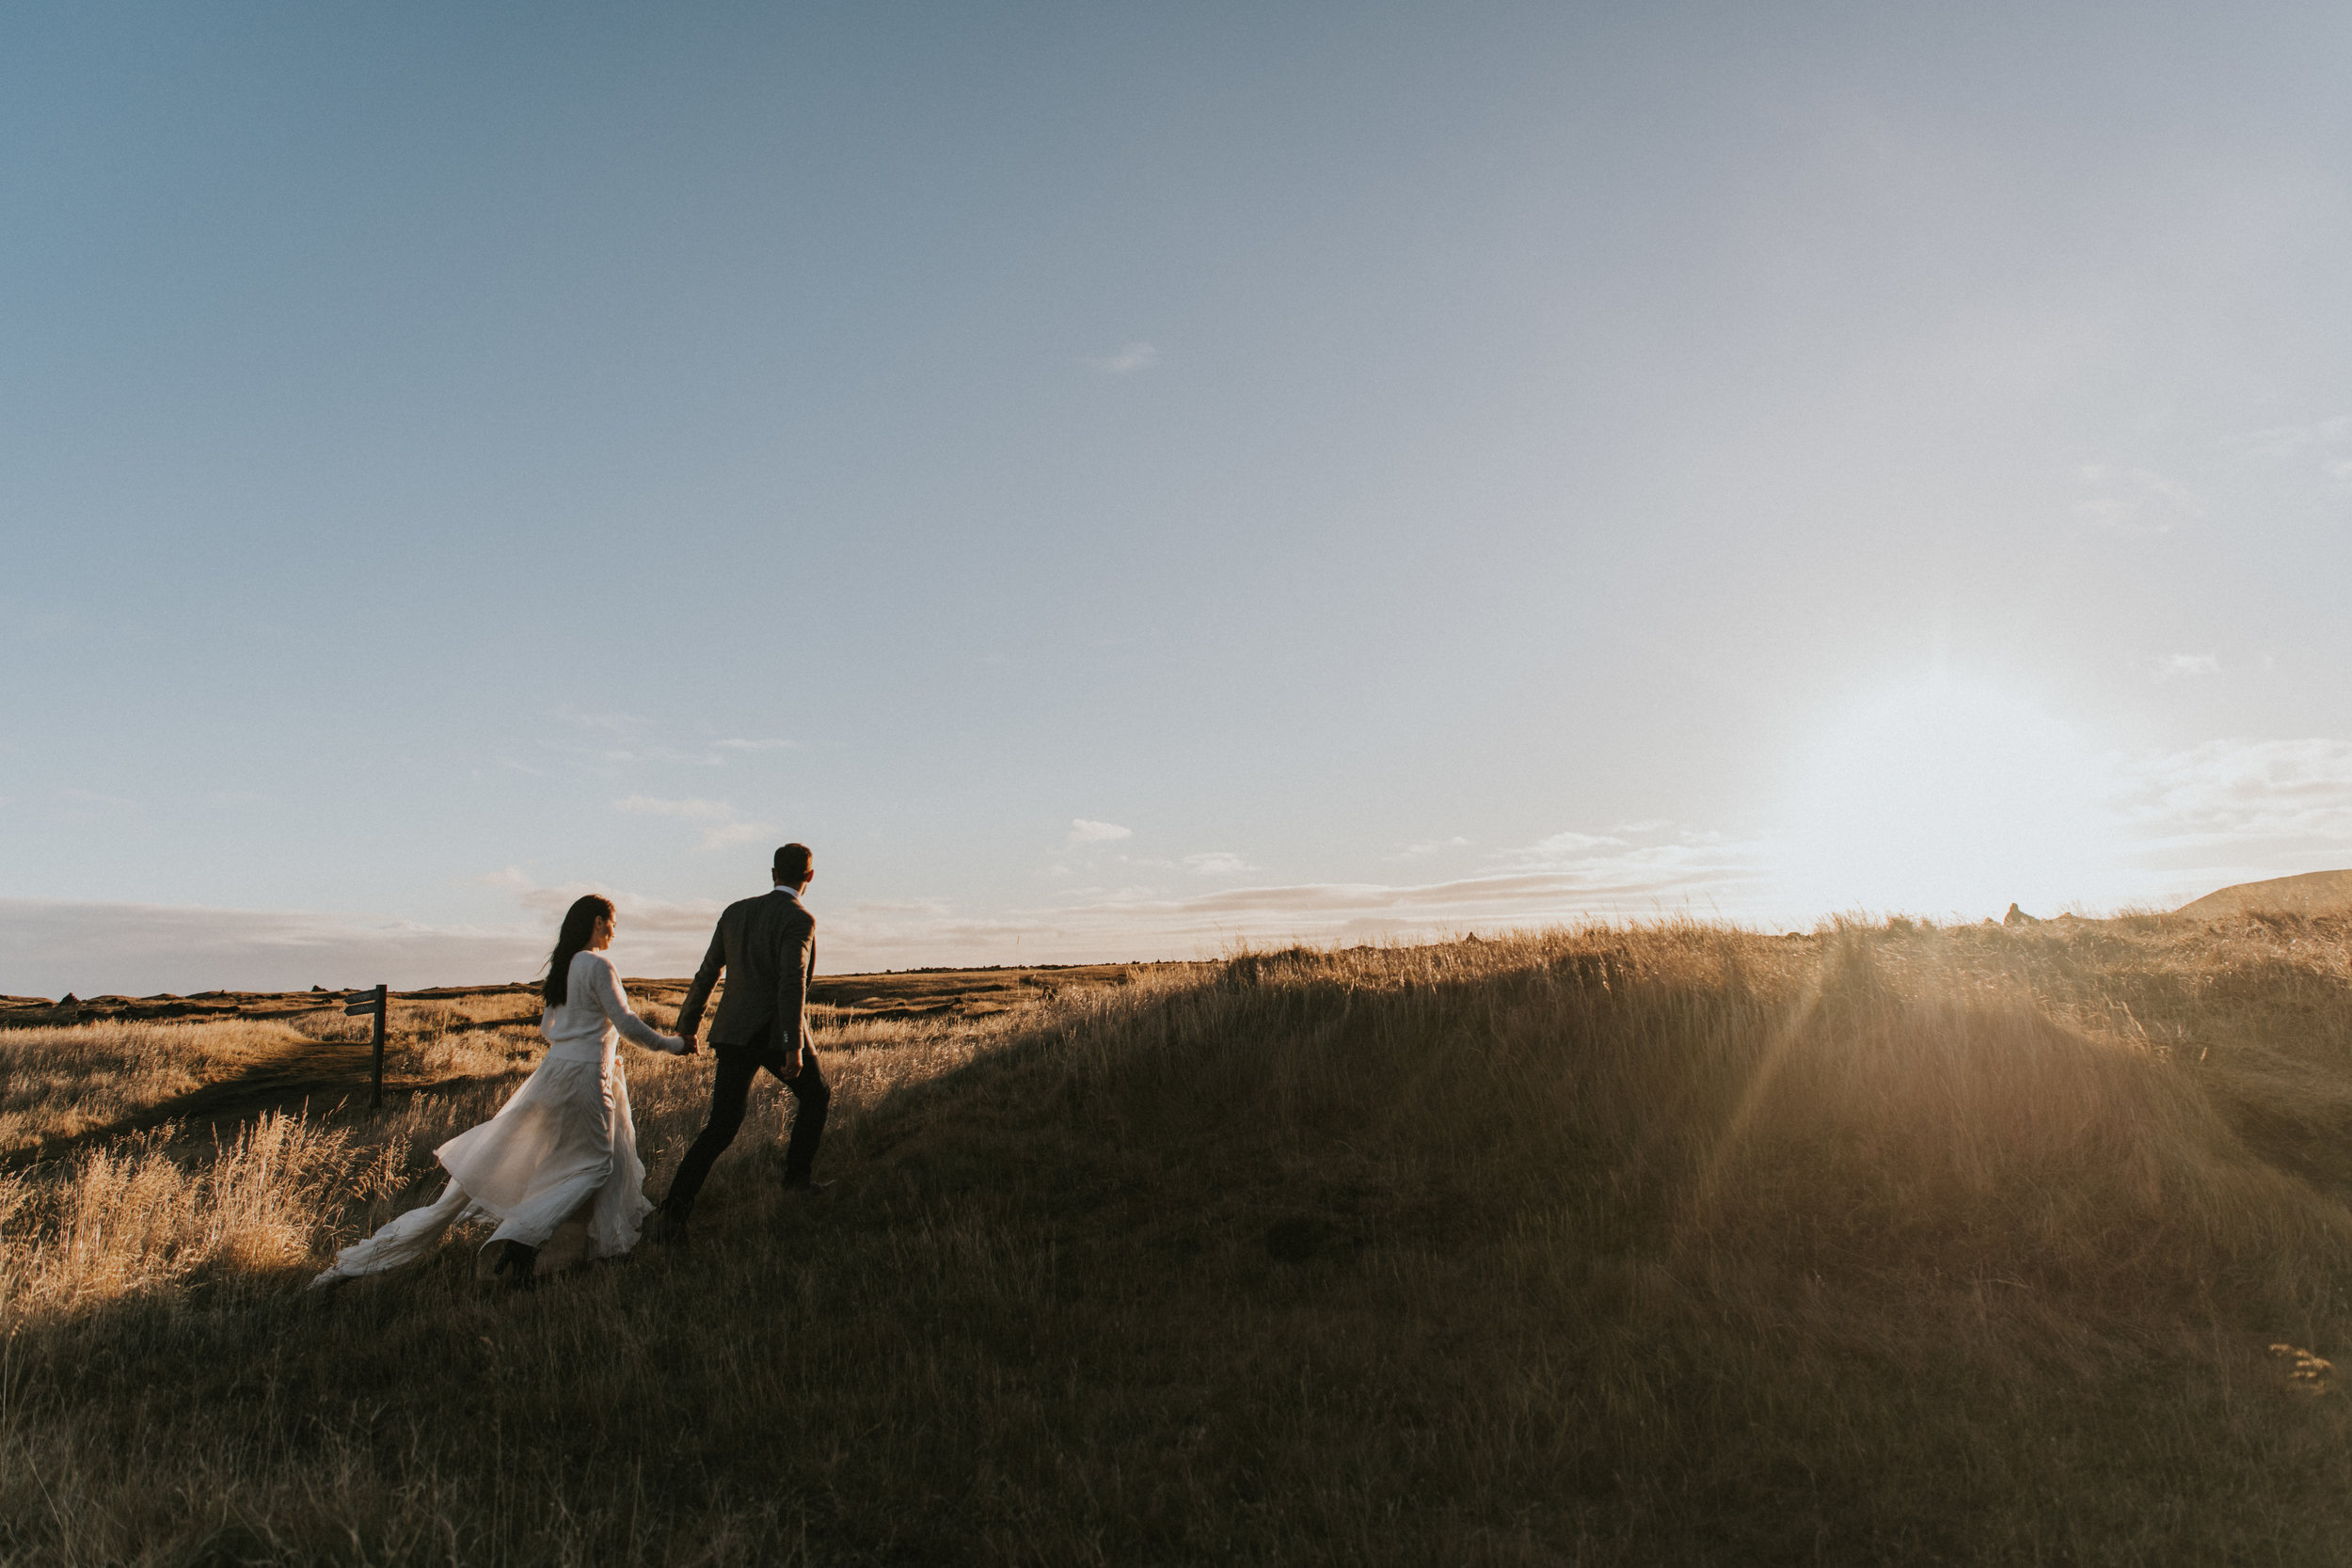 Natalie-Vitaly-Iceland-Elopement-Photographer-Videographer-41